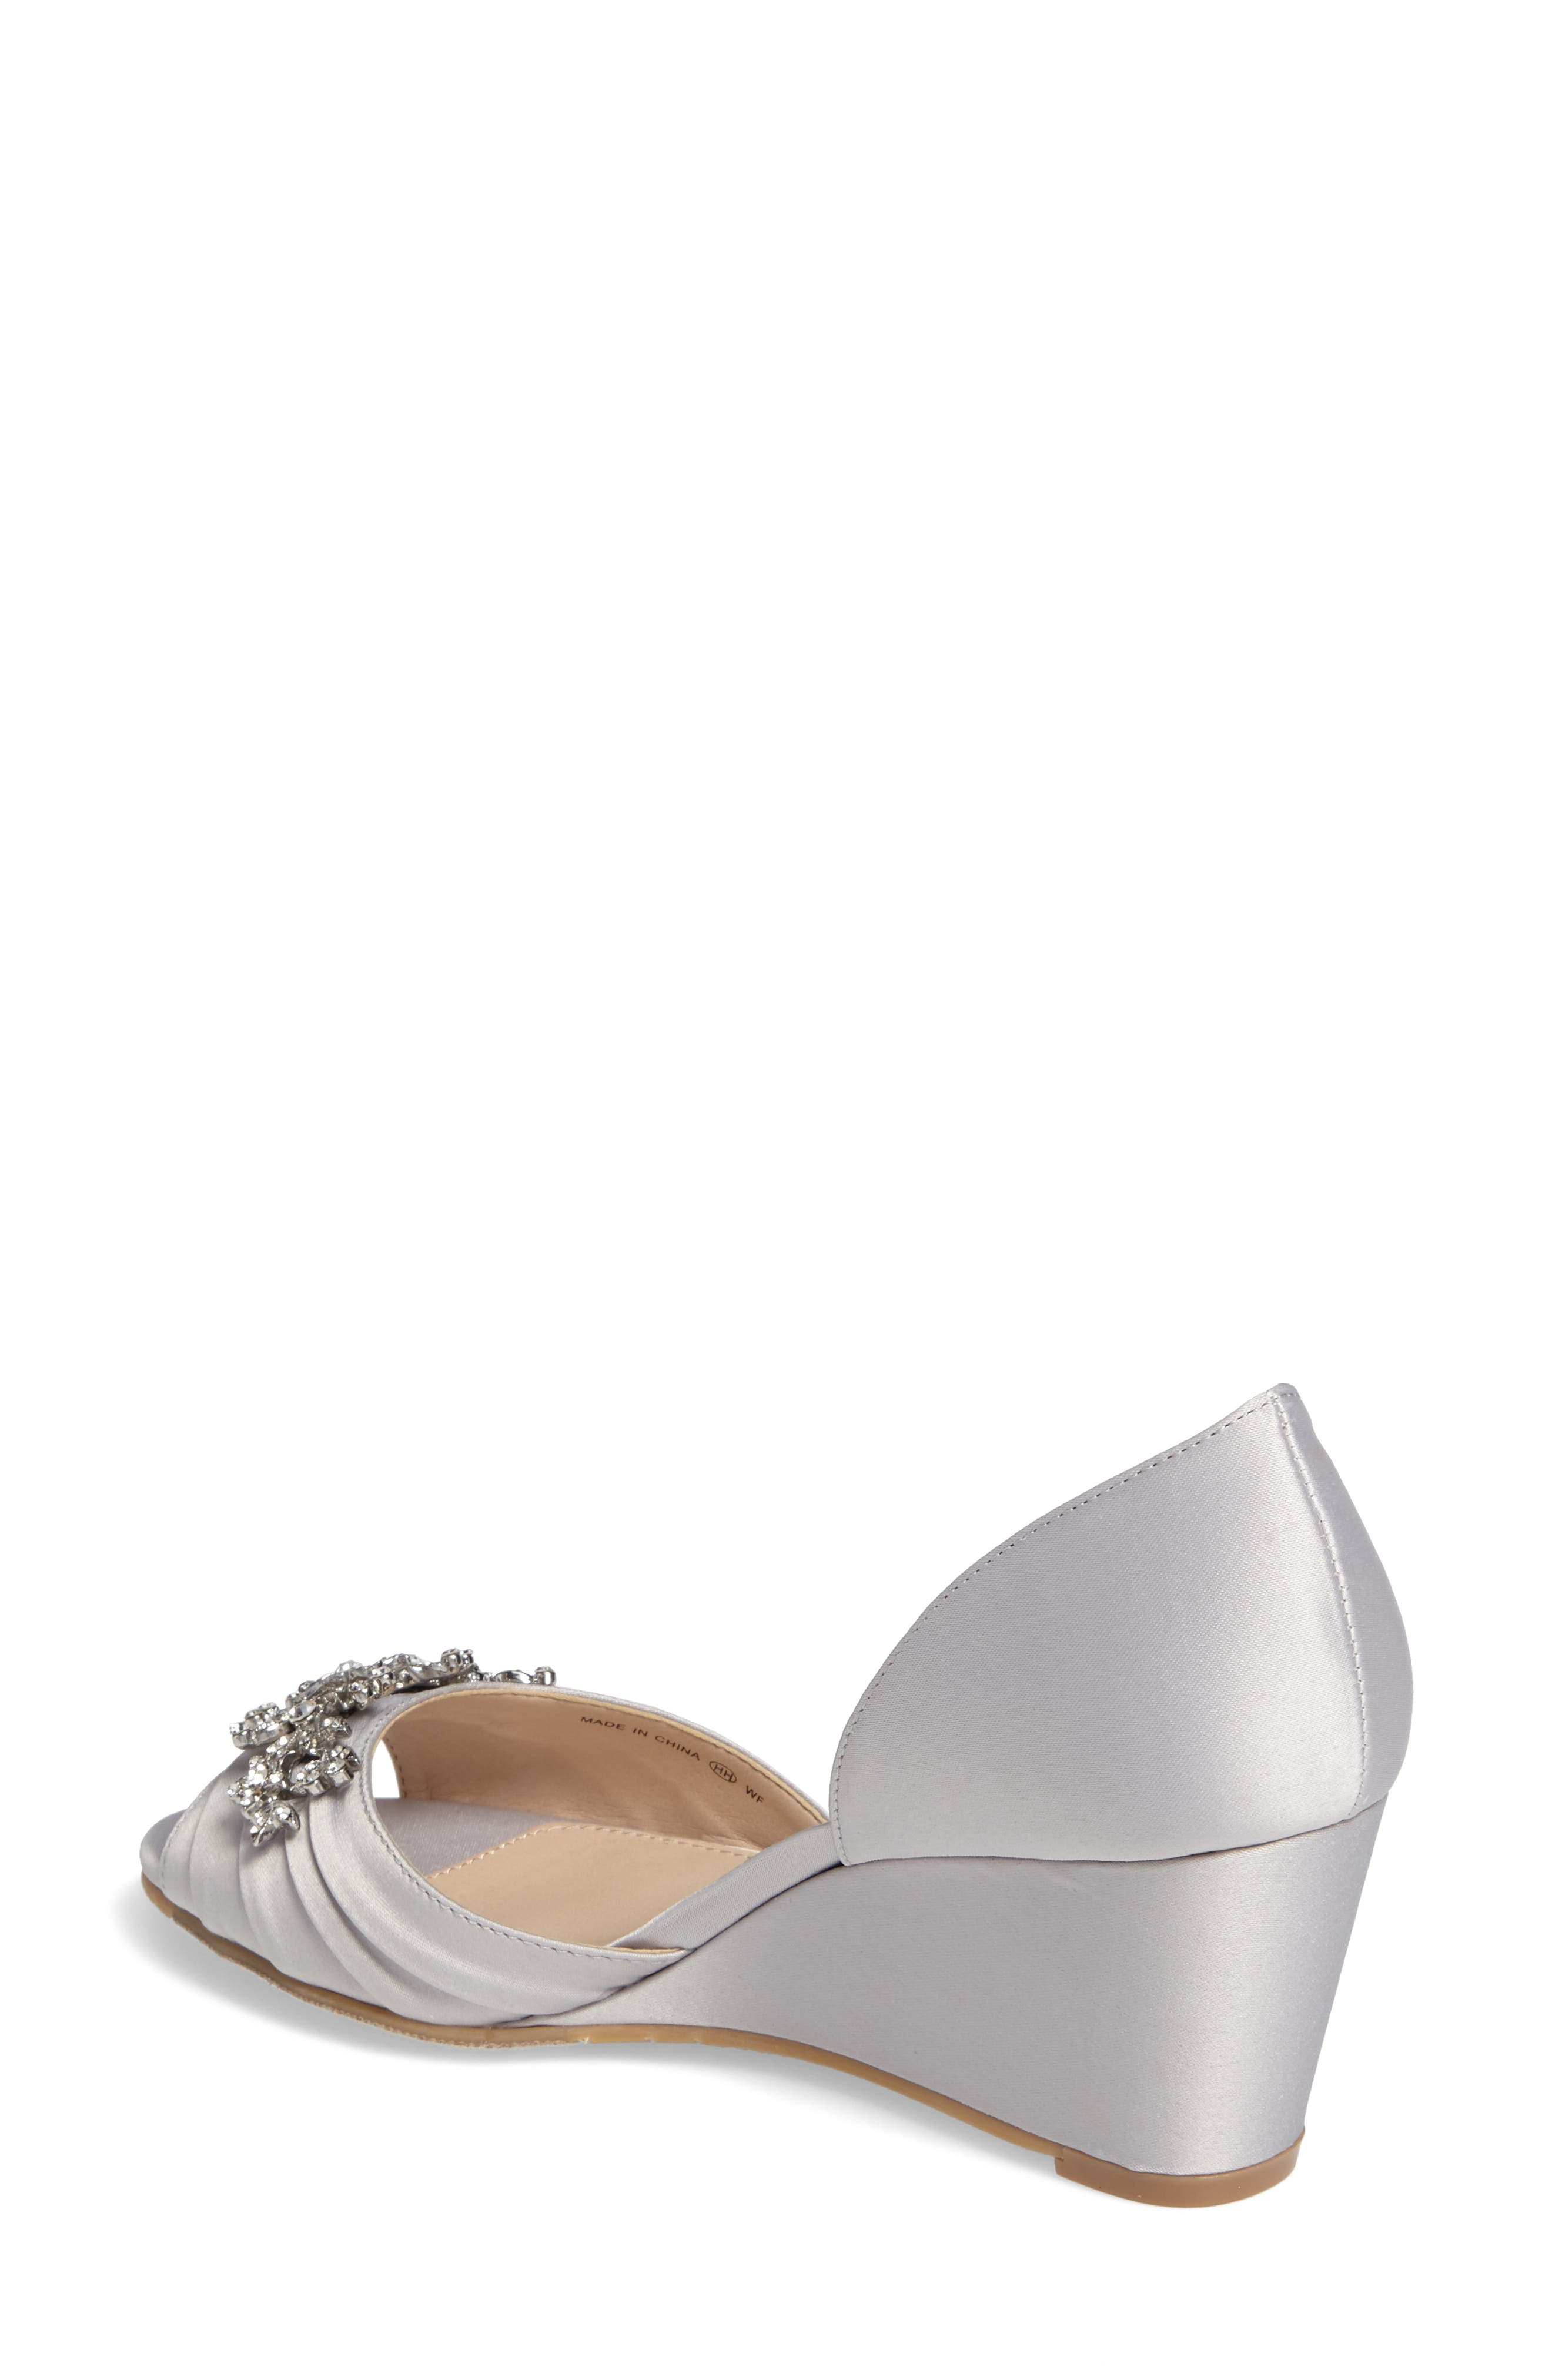 Emiko d'Orsay Wedge Pump,                             Alternate thumbnail 2, color,                             SILVER SATIN